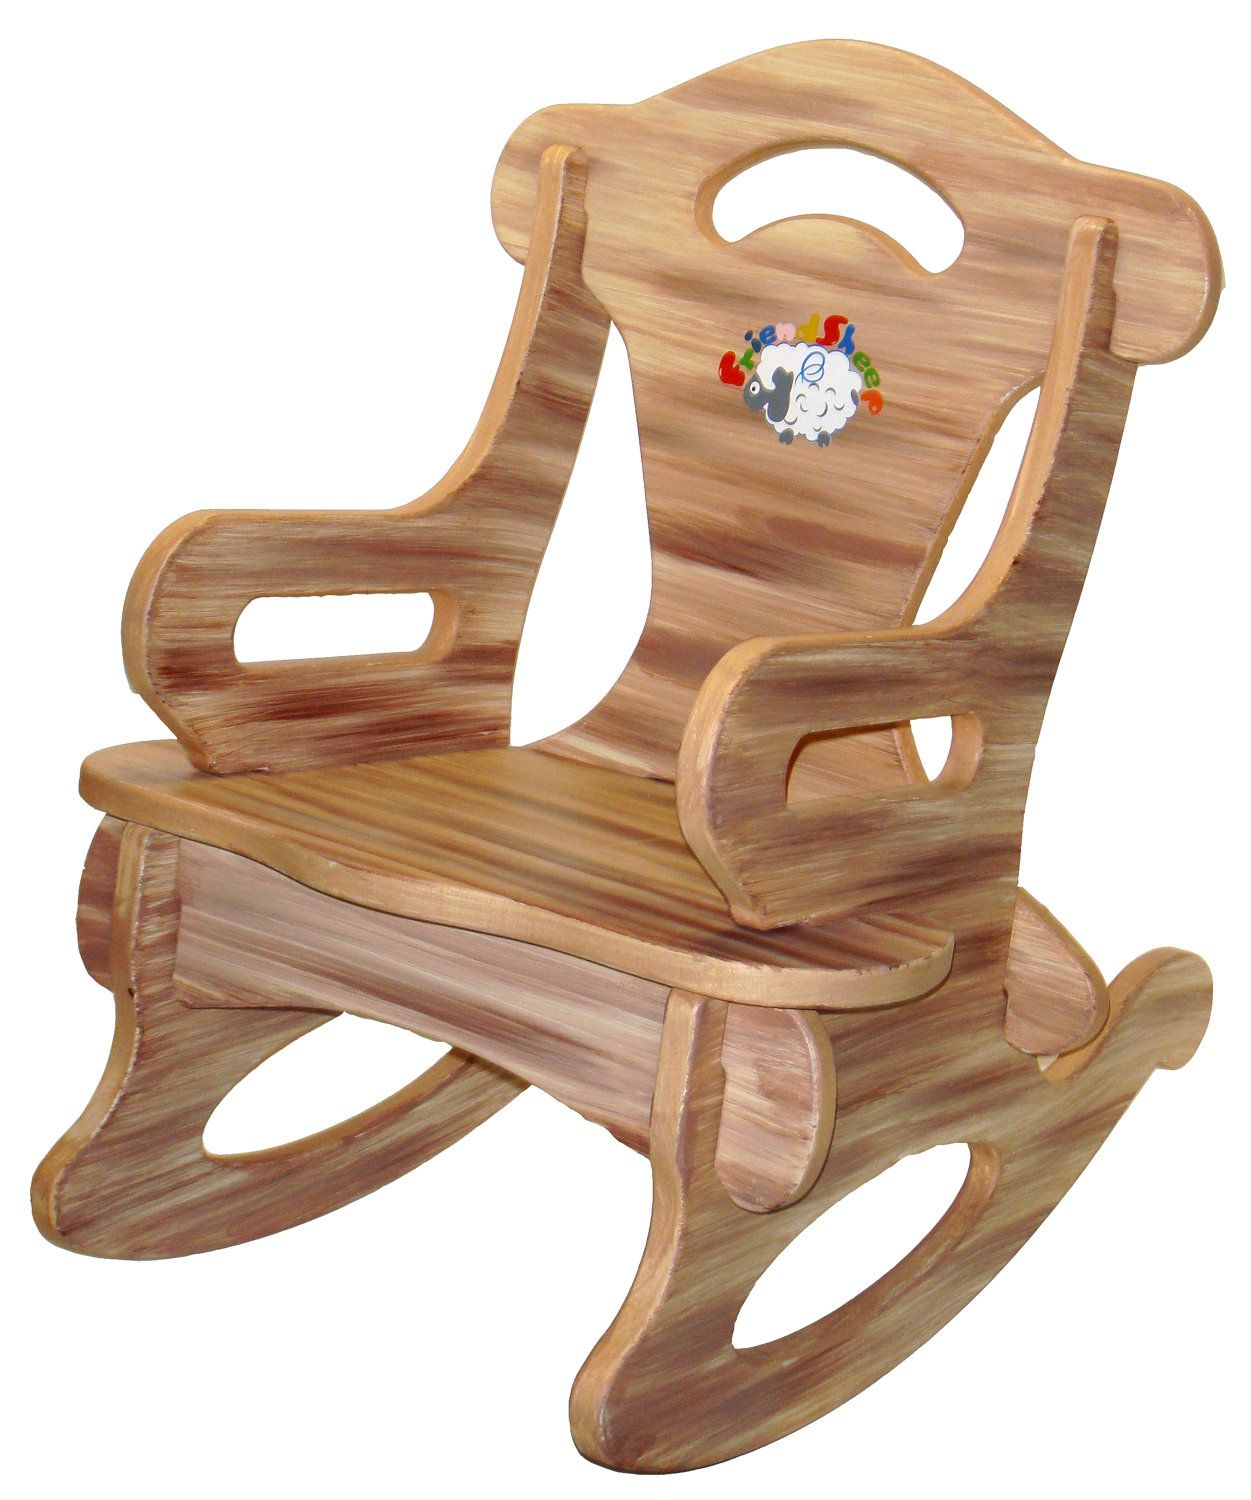 child wooden rocking chair household furniture for home furniture consept from child wooden rocking chair design ideas collections